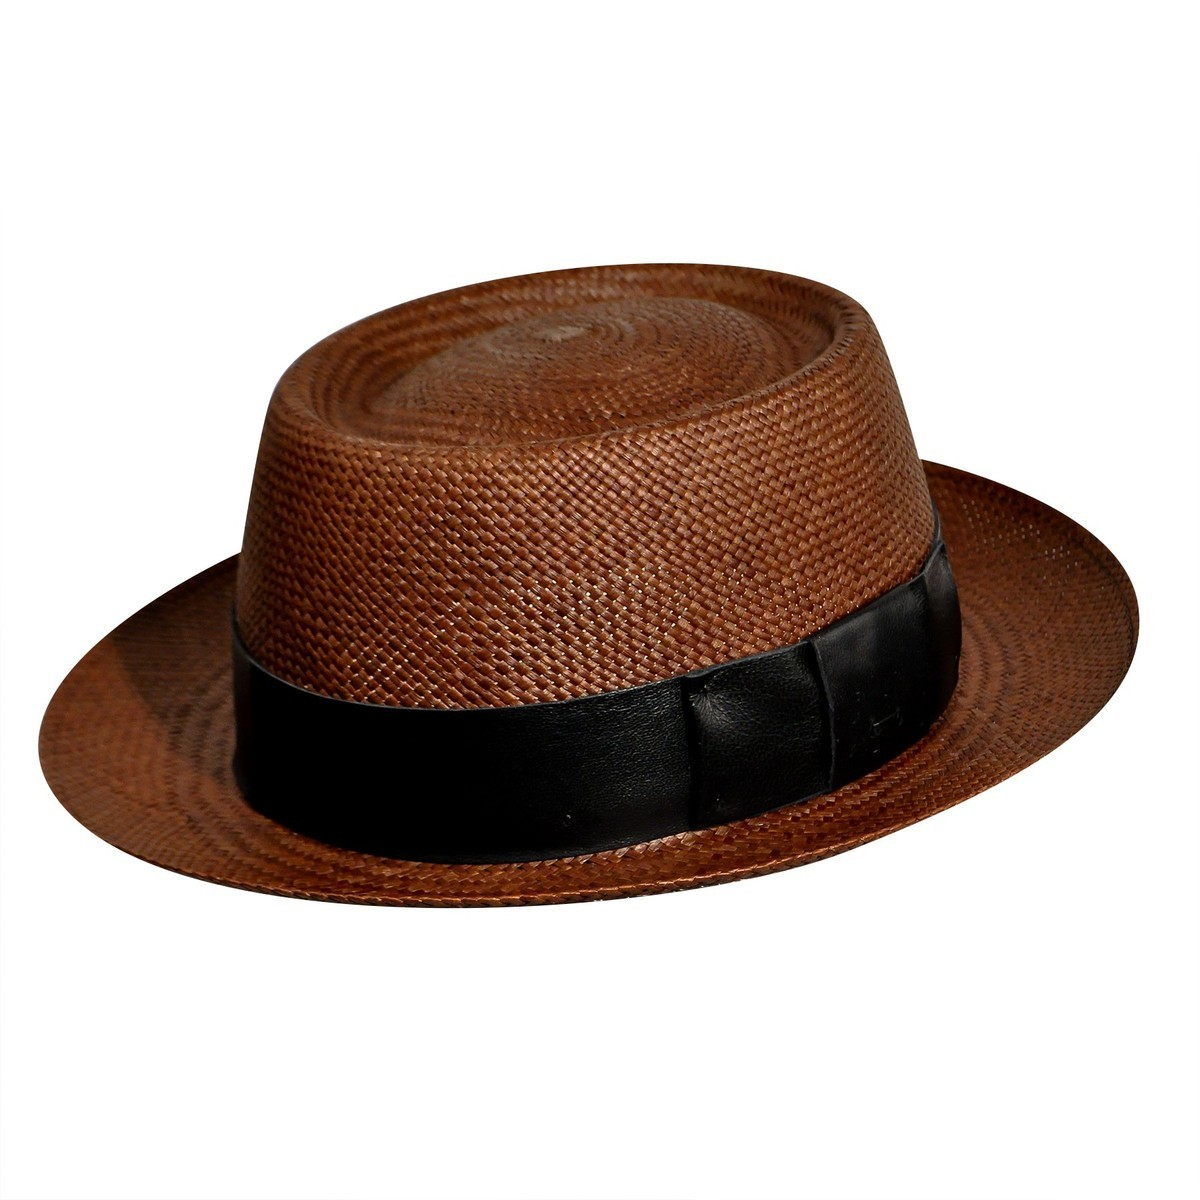 Bailey of Hollywood Fimmel Panama Fedora Cherrywood フェドラハット 帽子 Cherrywood